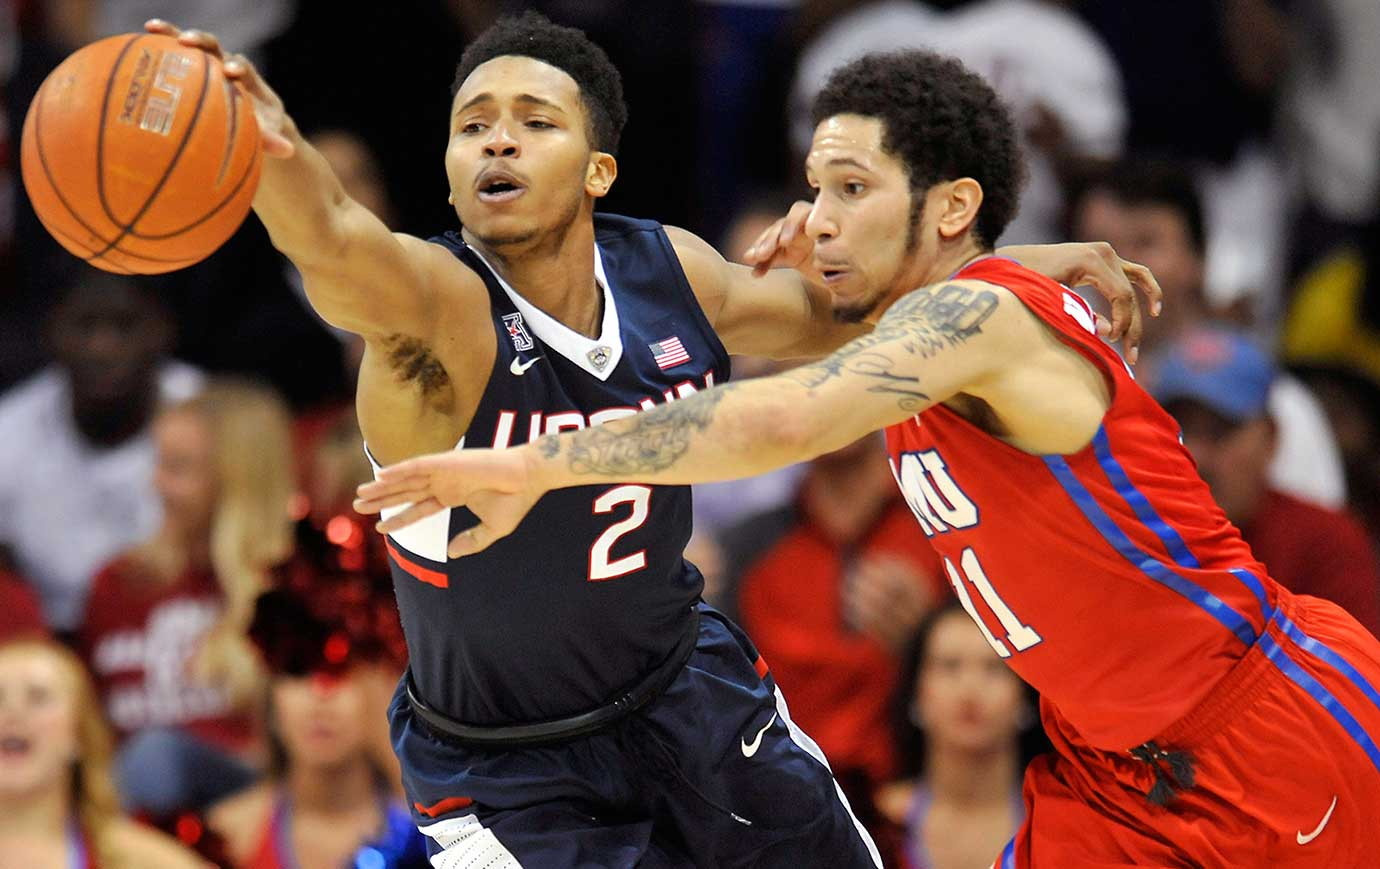 UConn's Jalen Adams nearly steals the ball from SMU's Nic Moore at Moody Coliseum.